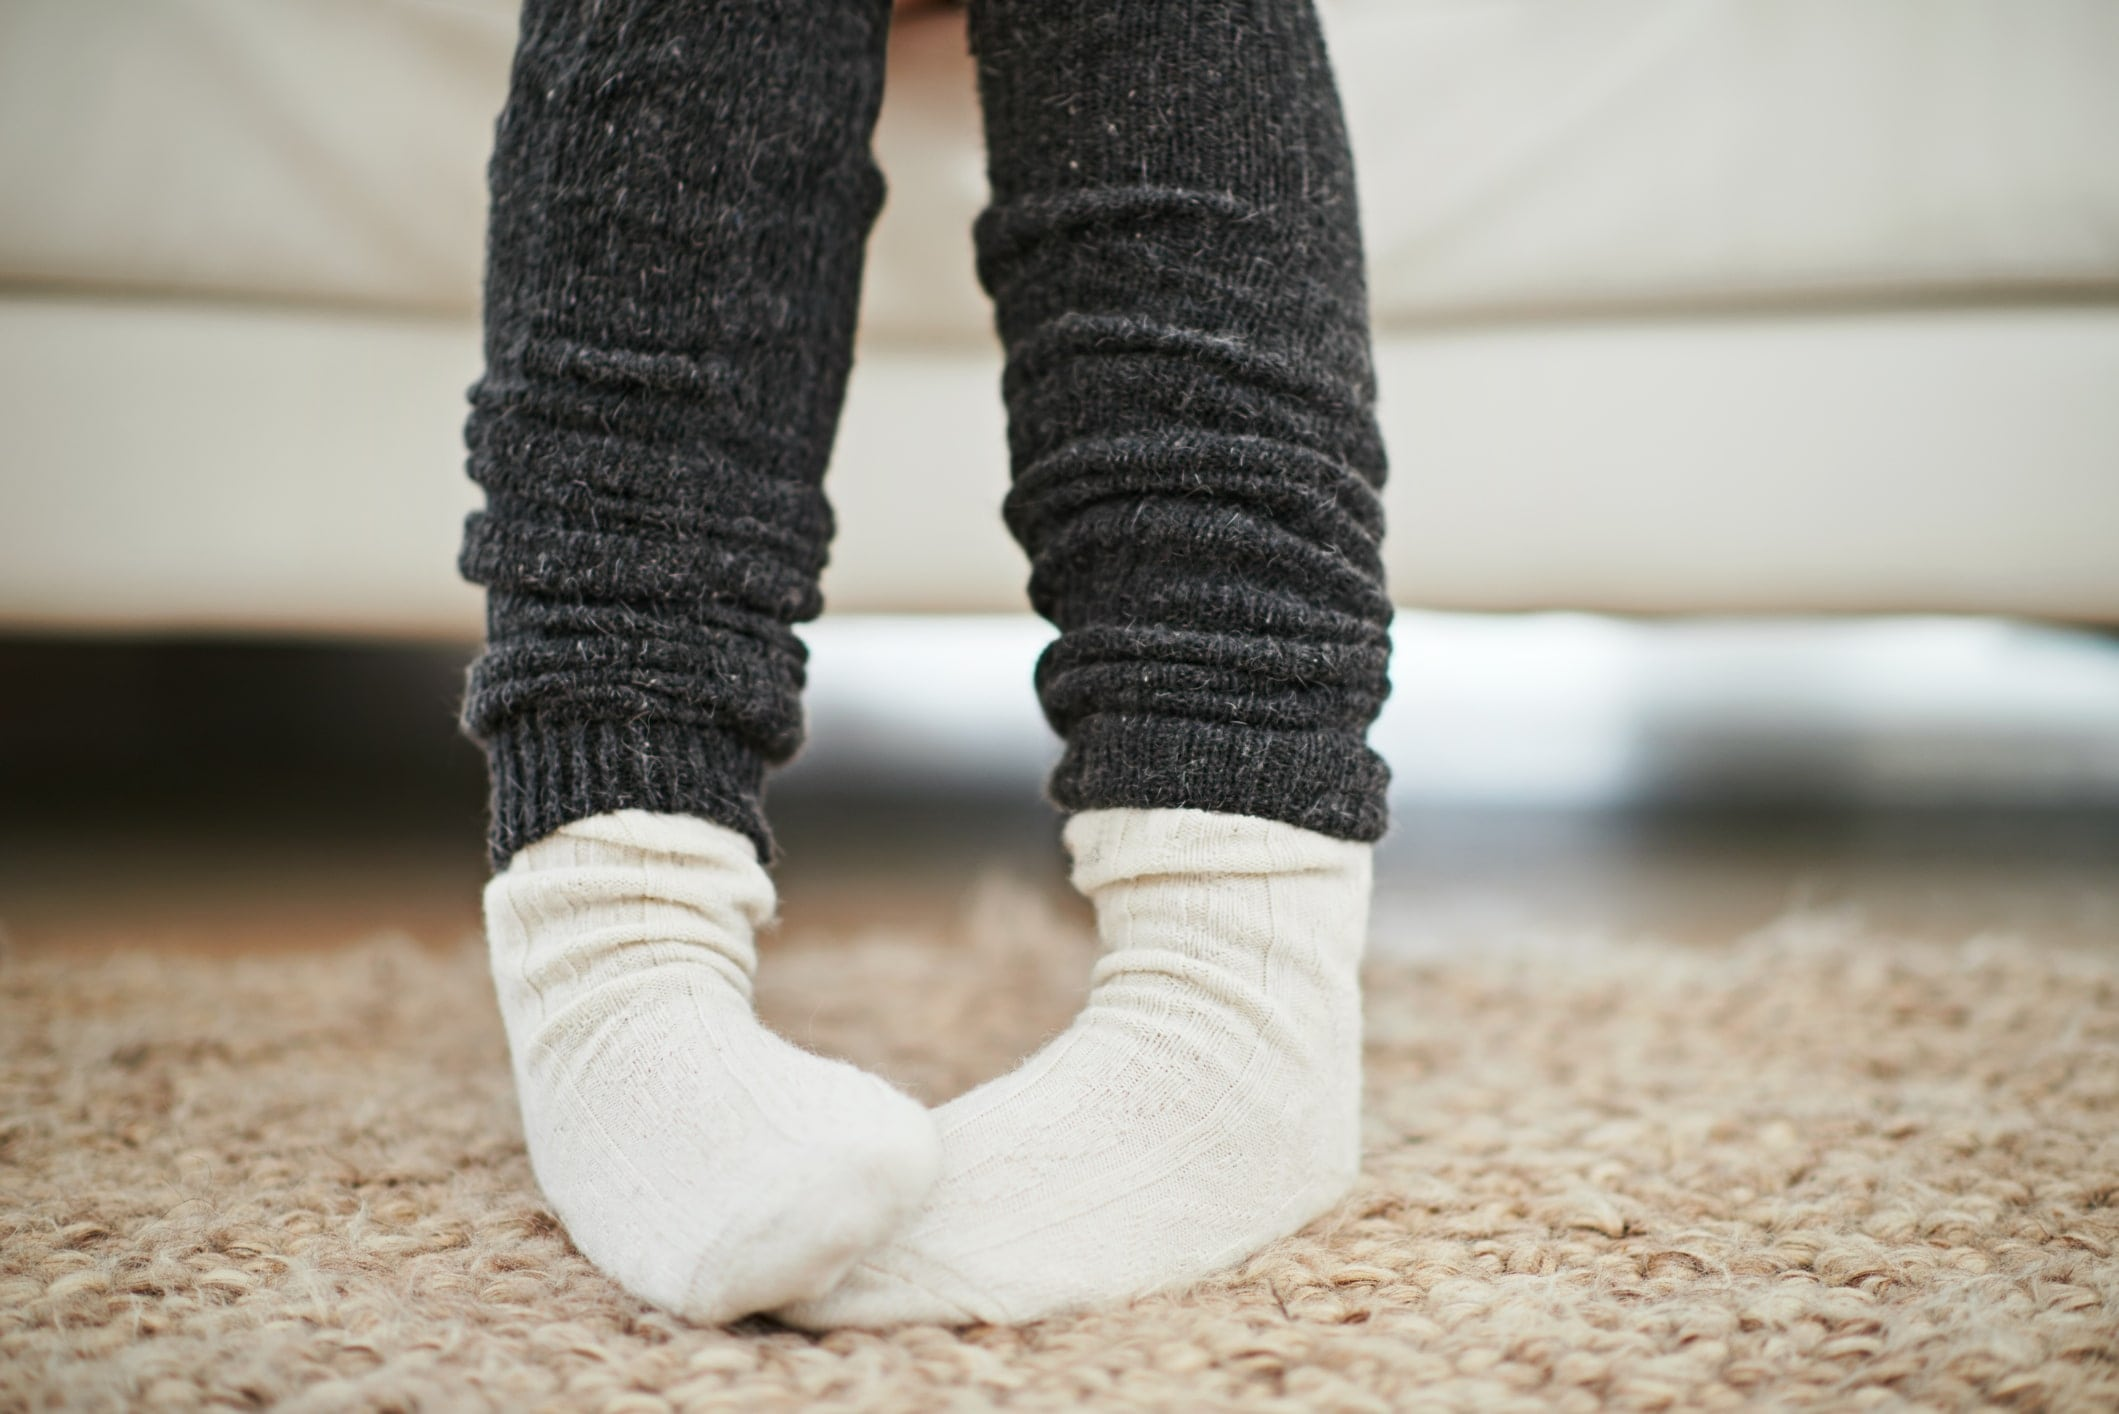 Remedies for Cold Floors in Winter